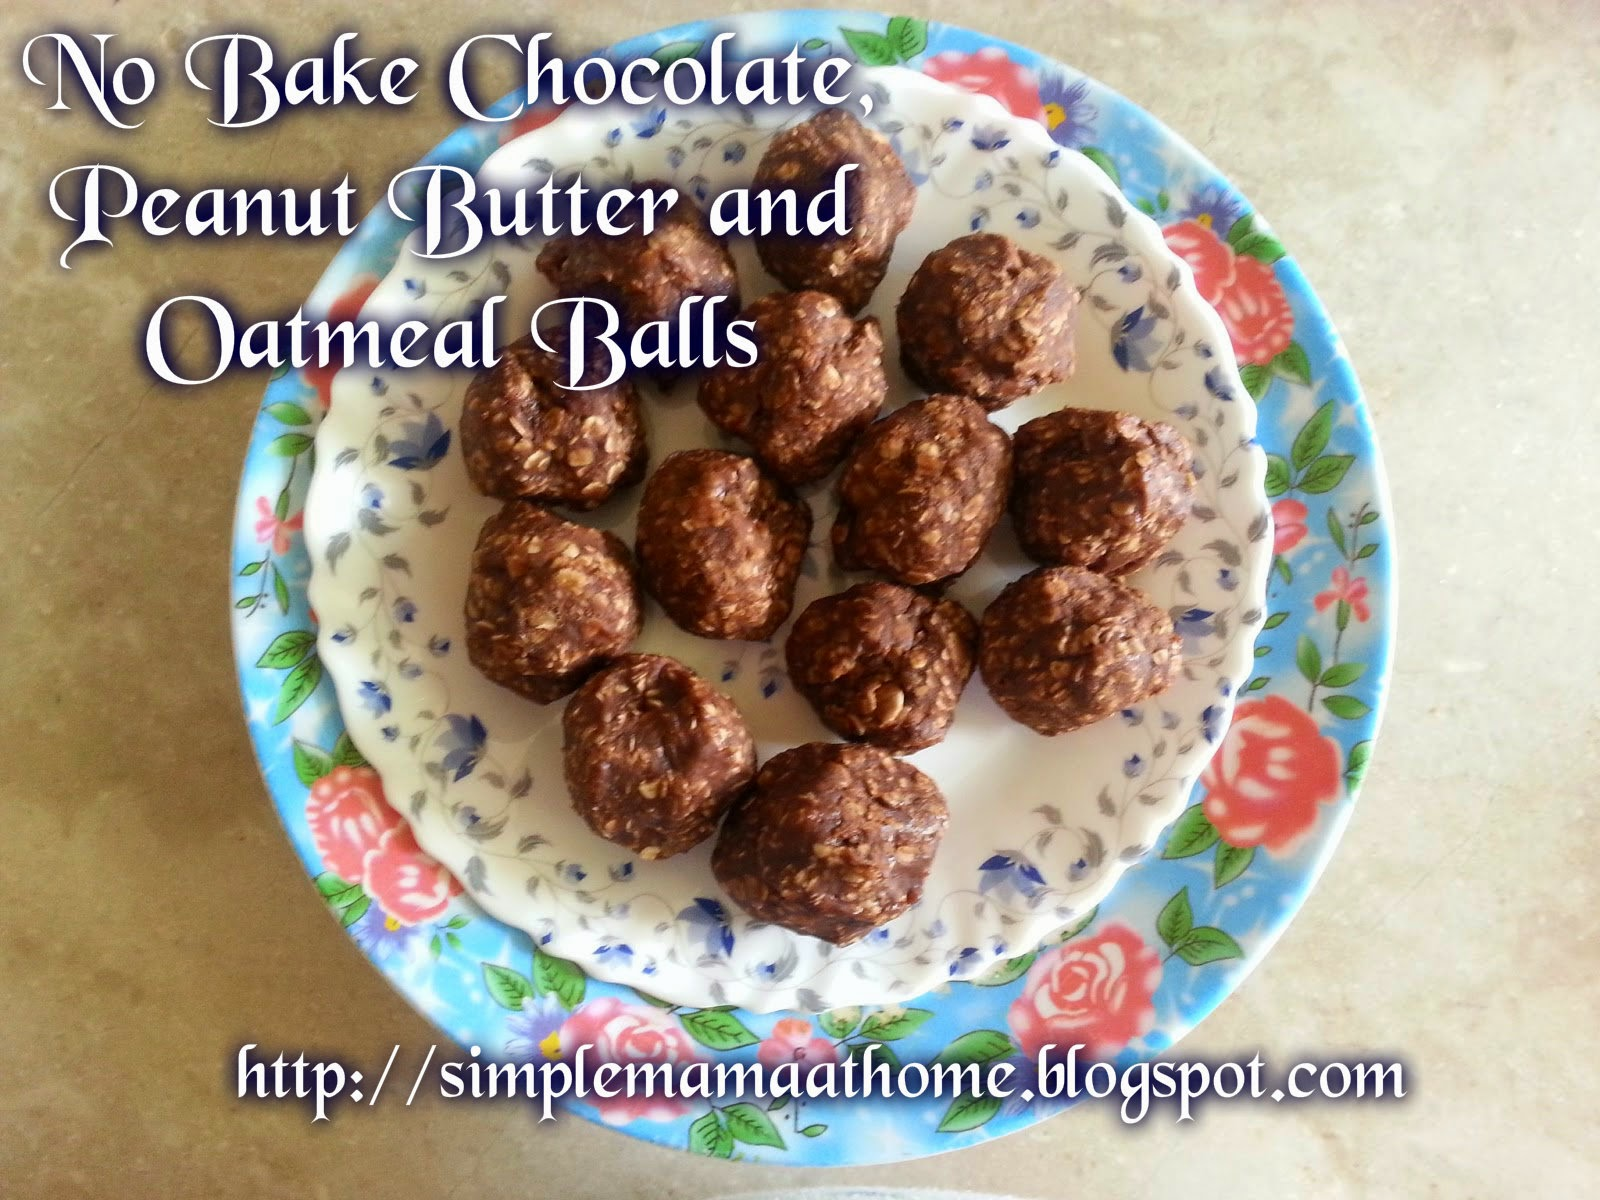 No Bake Chocolate, Peanut Butter and Oatmeal Balls